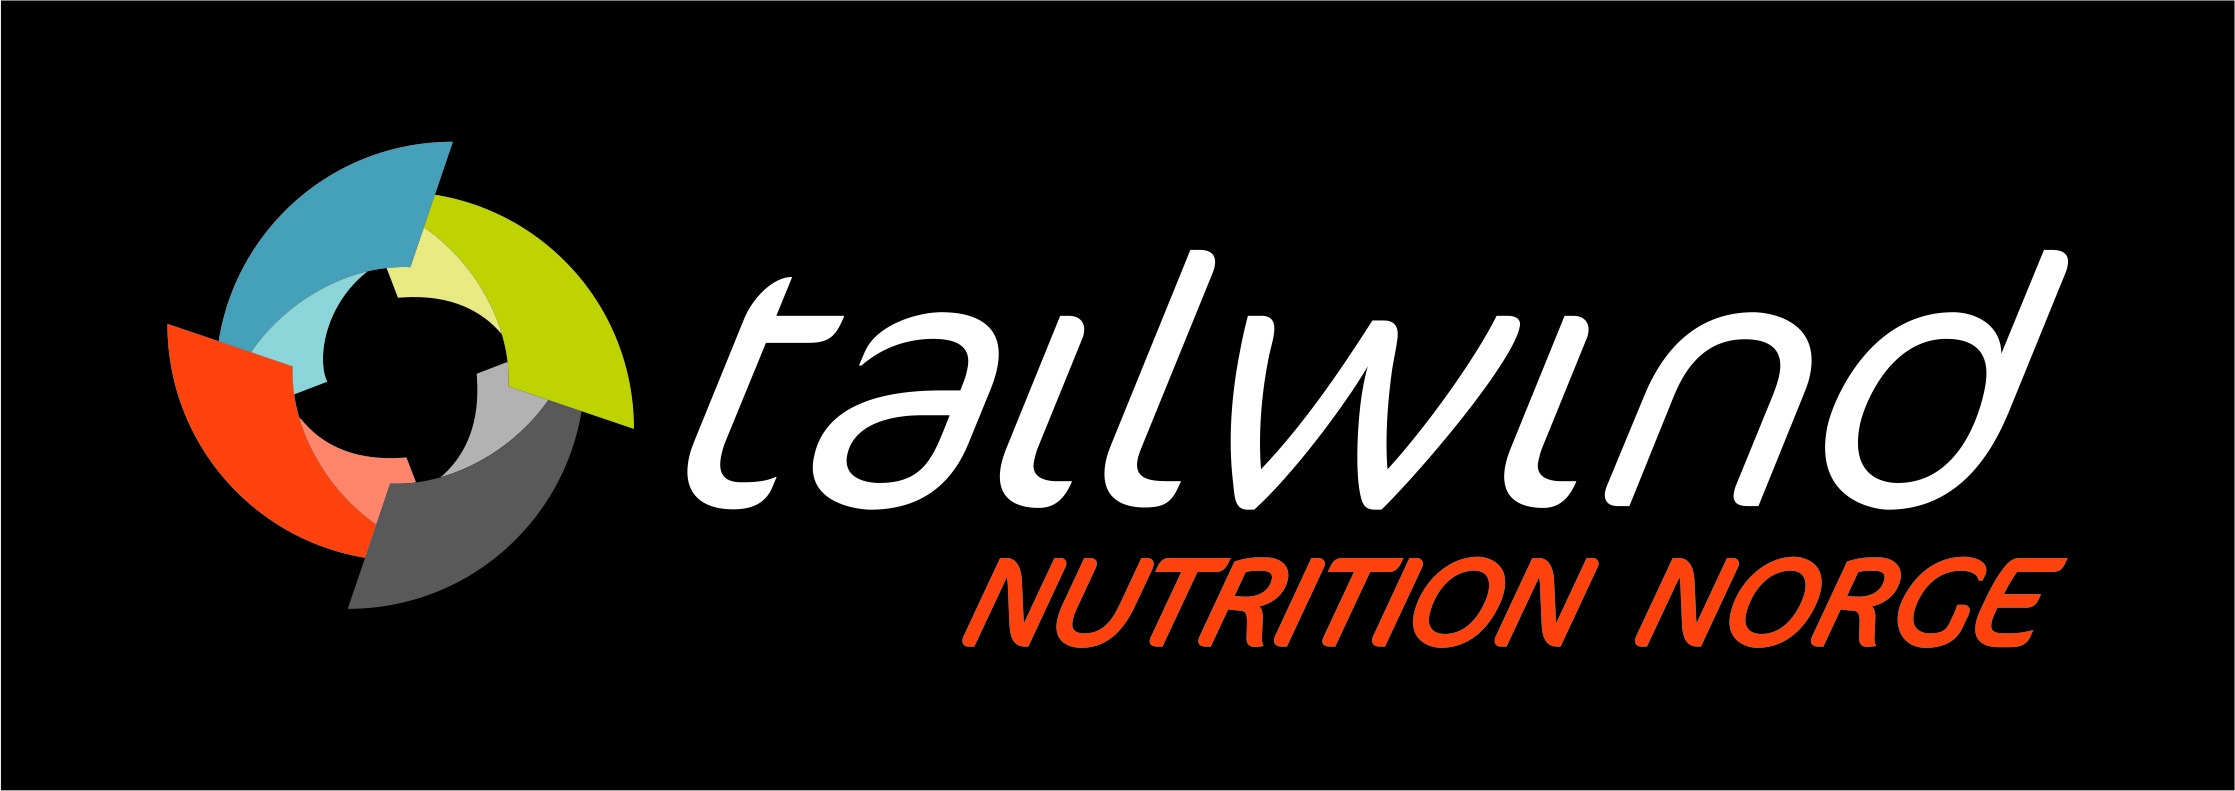 Tailwind Nutrition Norge